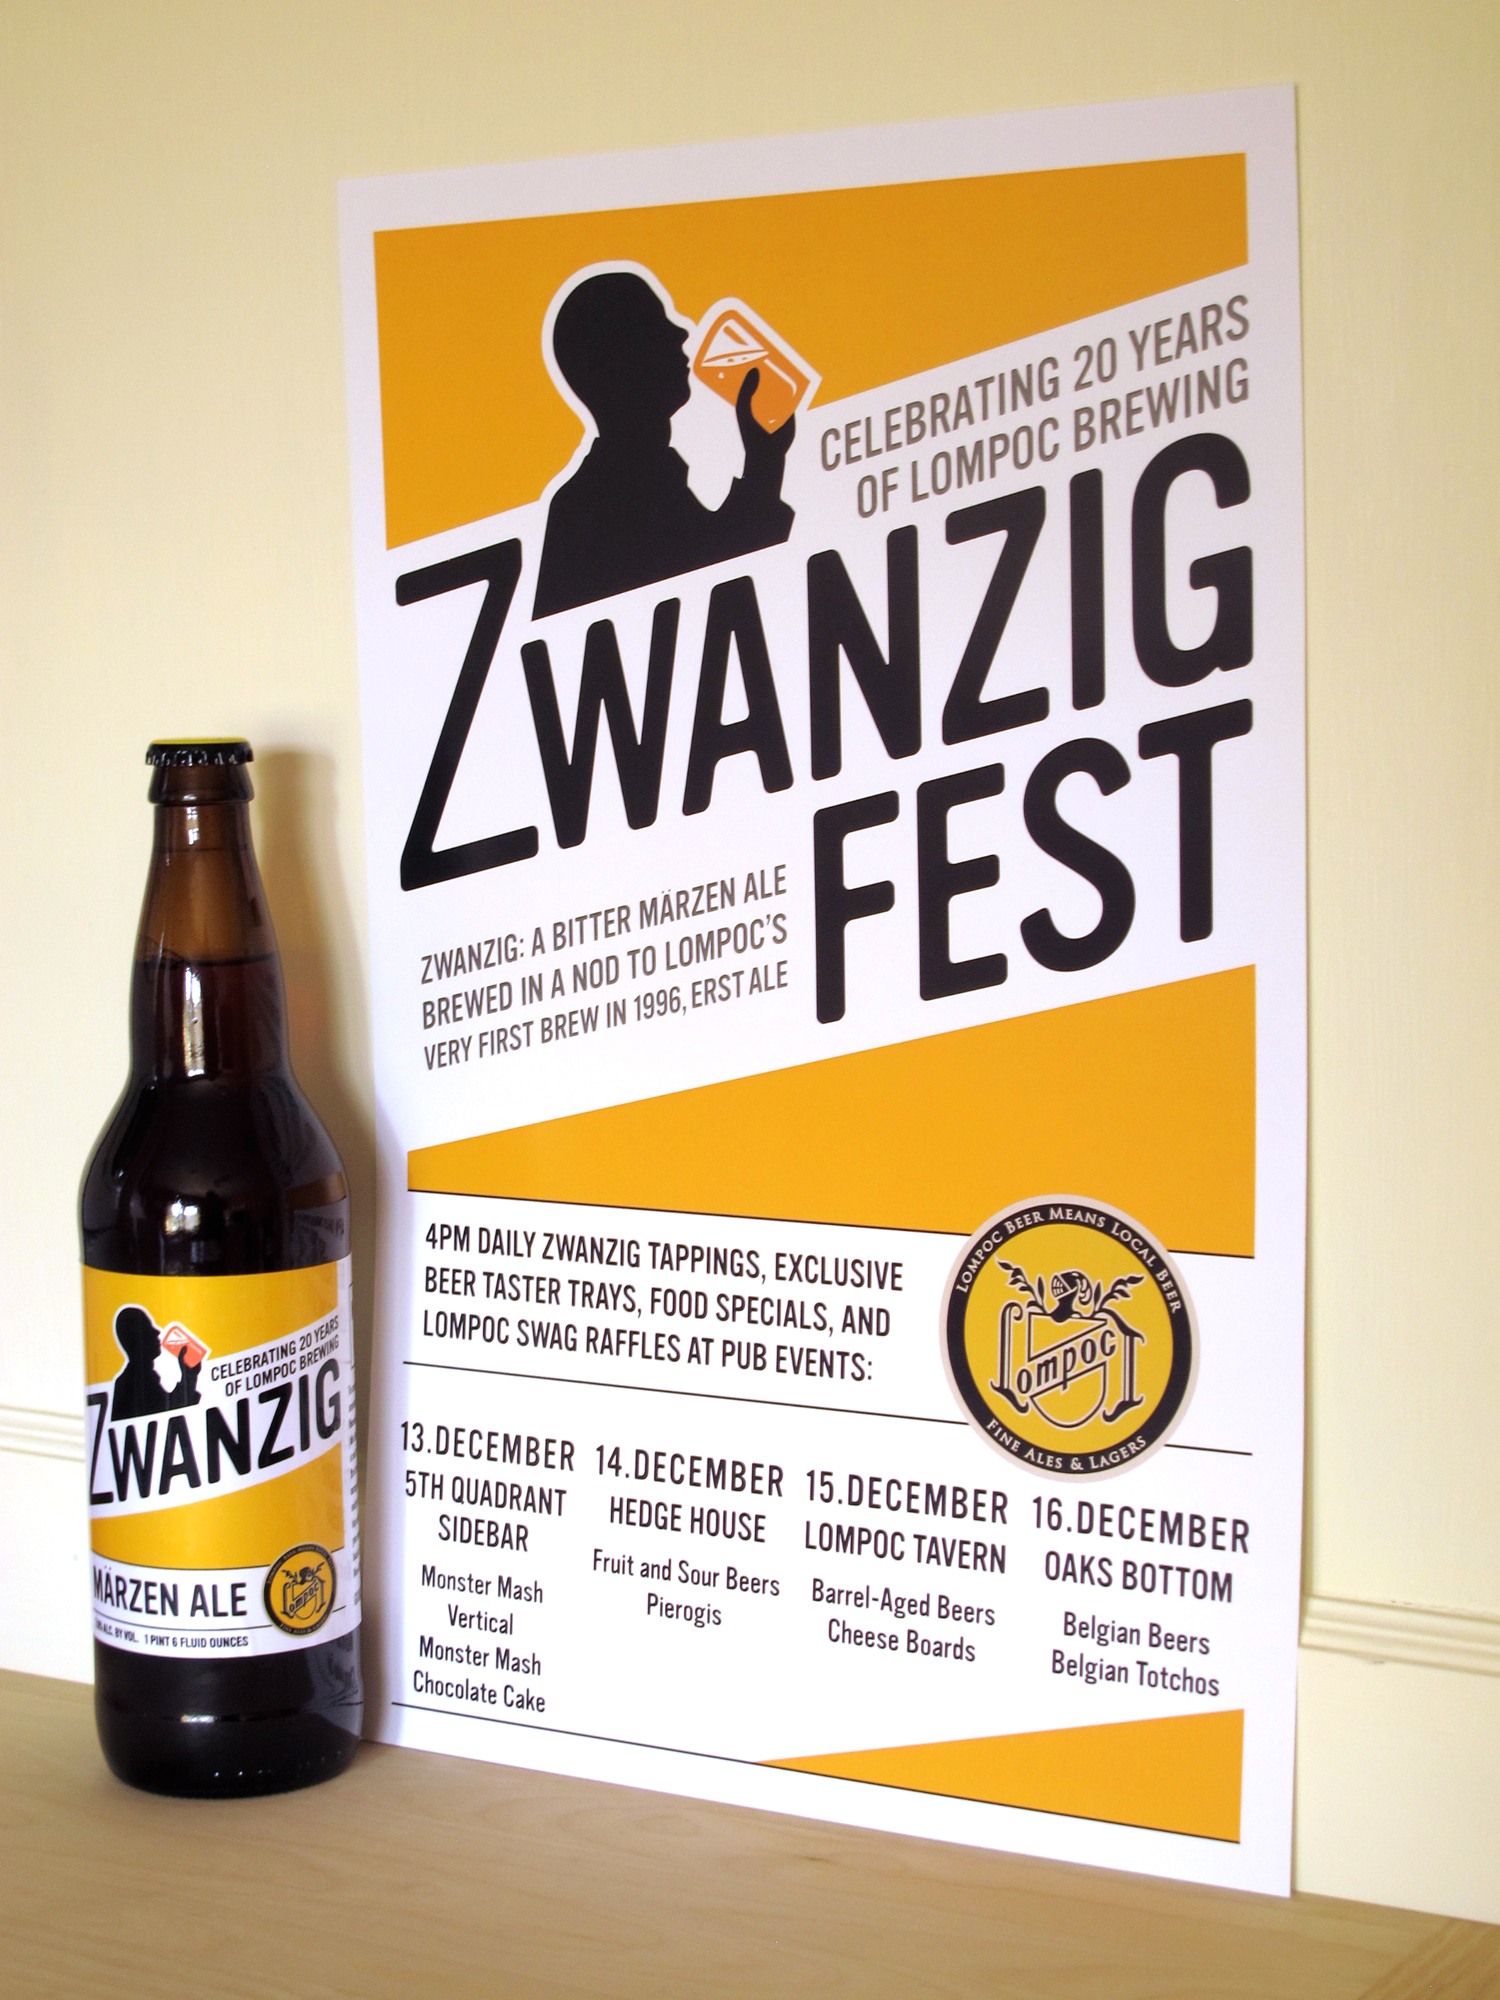 Lompoc Brewing Zwanzig Fest Poster and Label